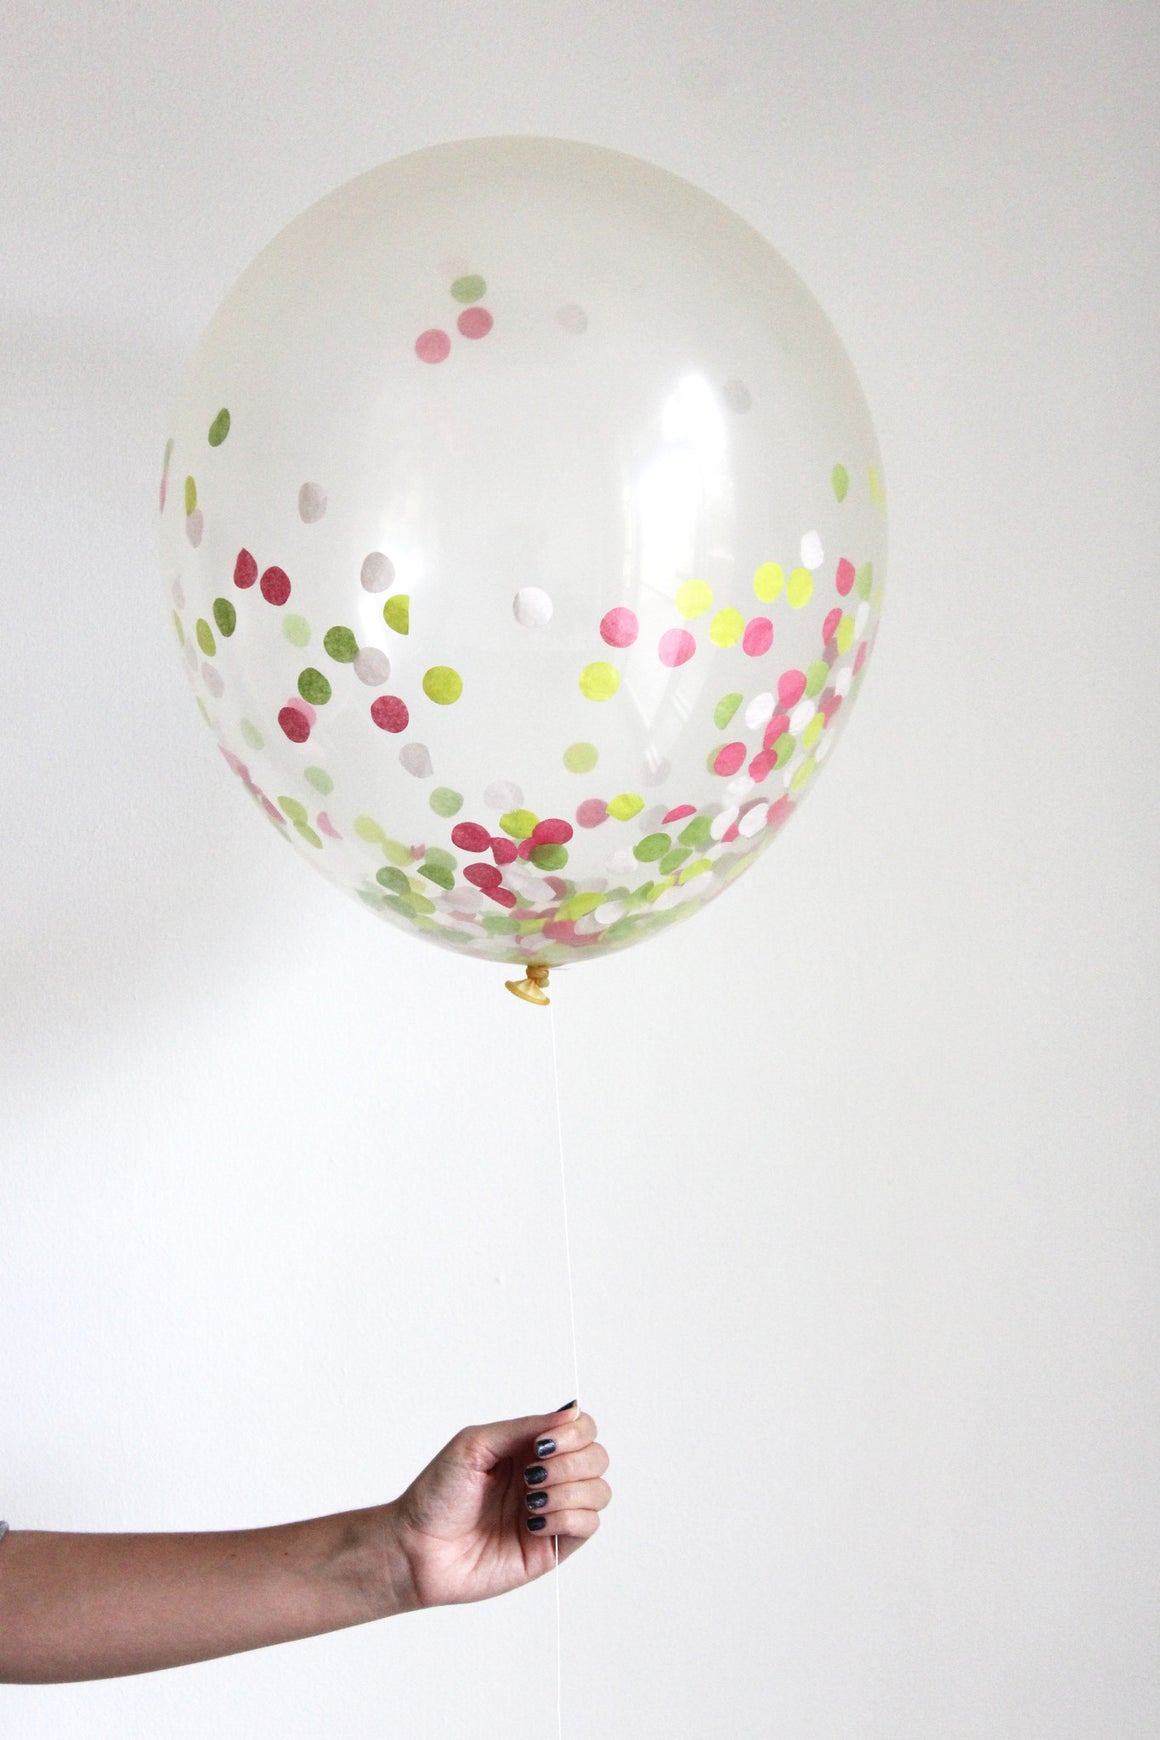 Confetti Balloon - Preppy